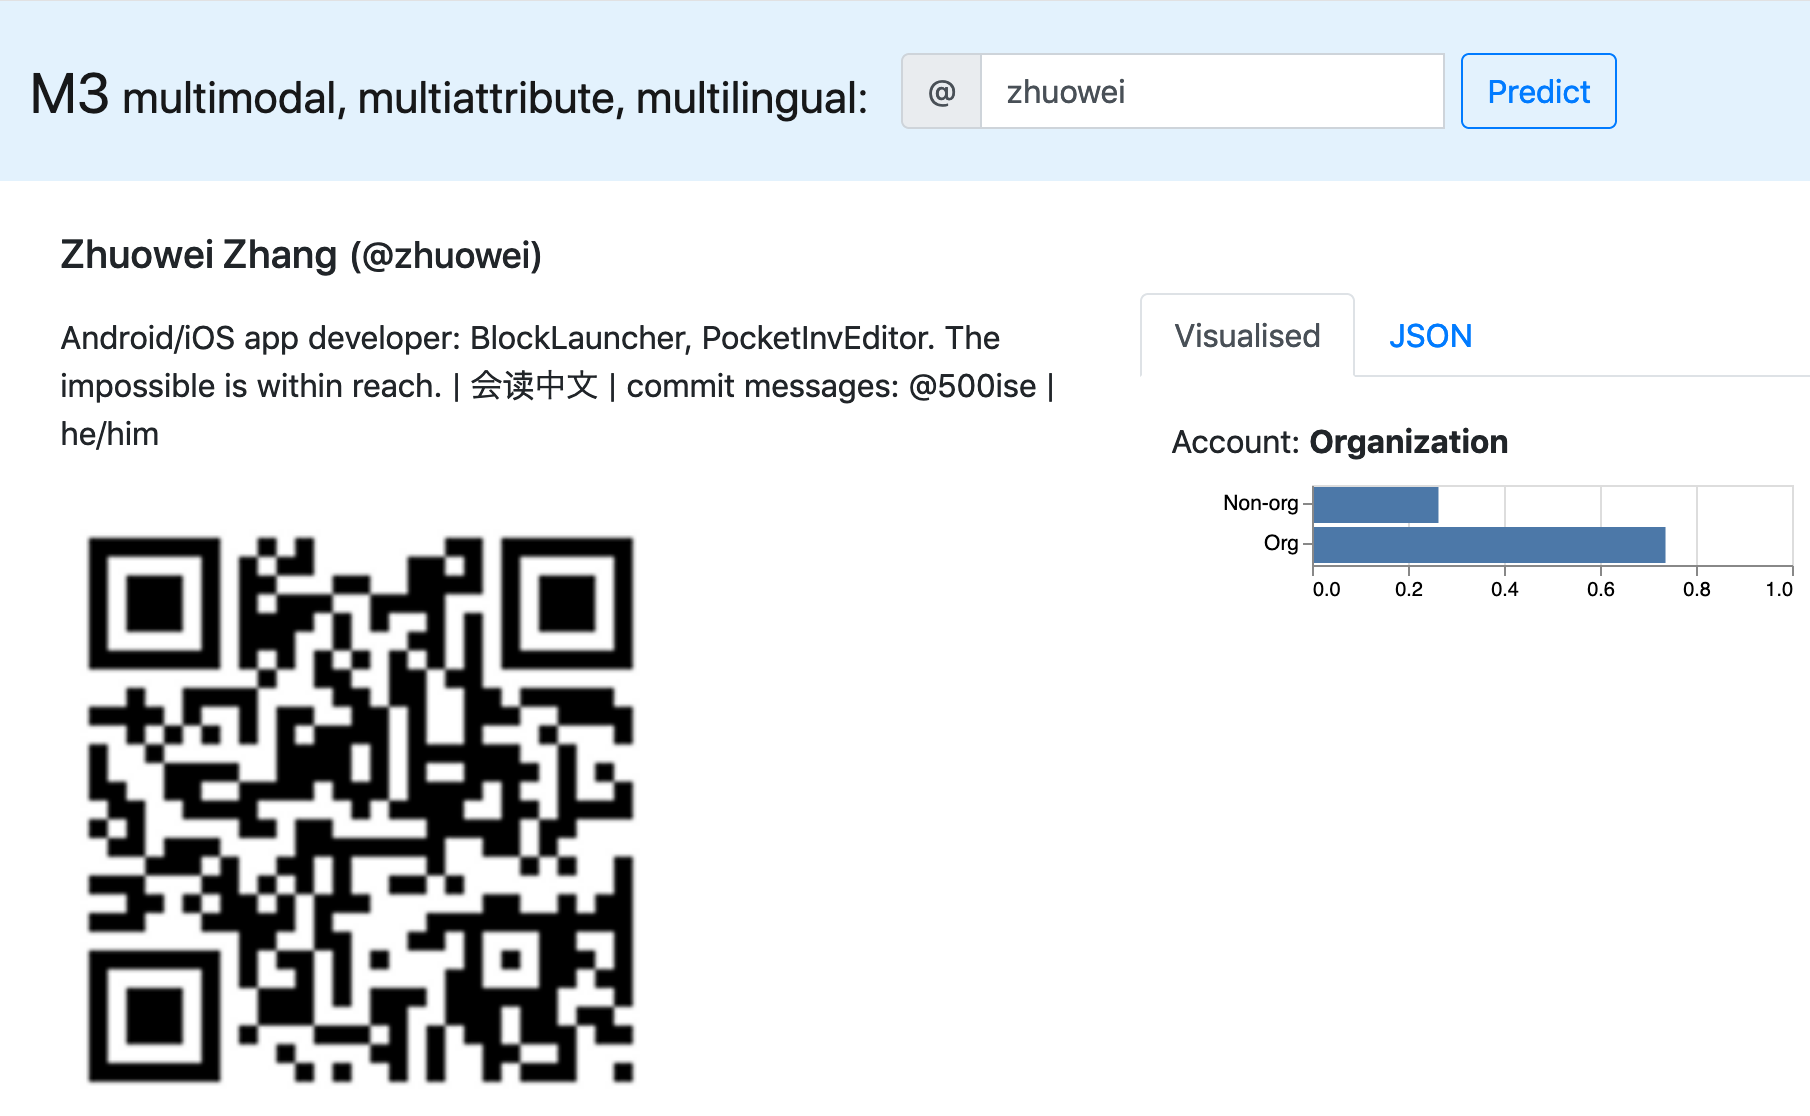 screenshot of m3inference on @zhuowei, saying that I'm a corporate account